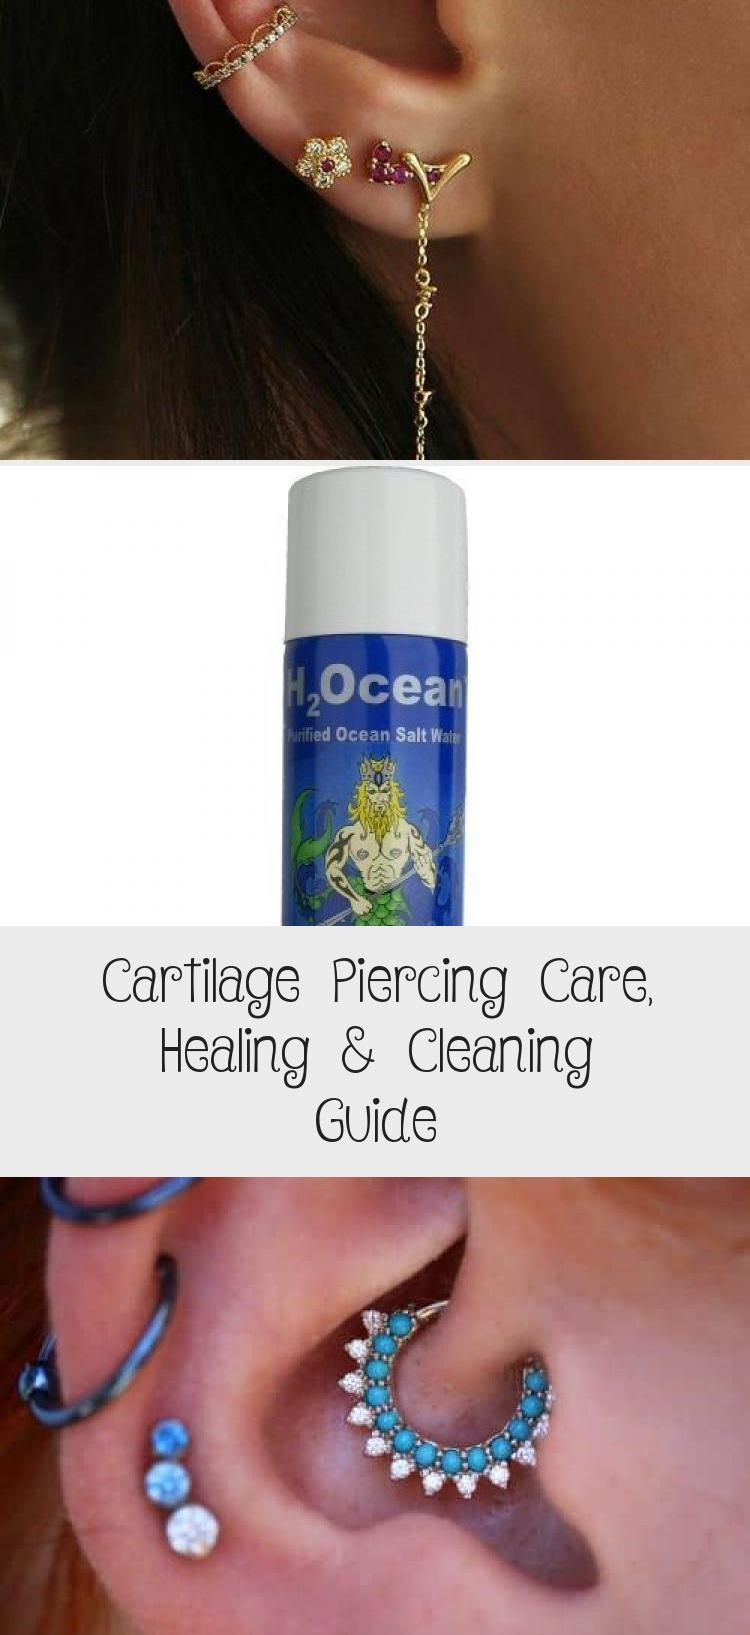 Cartilage piercing care healing cleaning guide